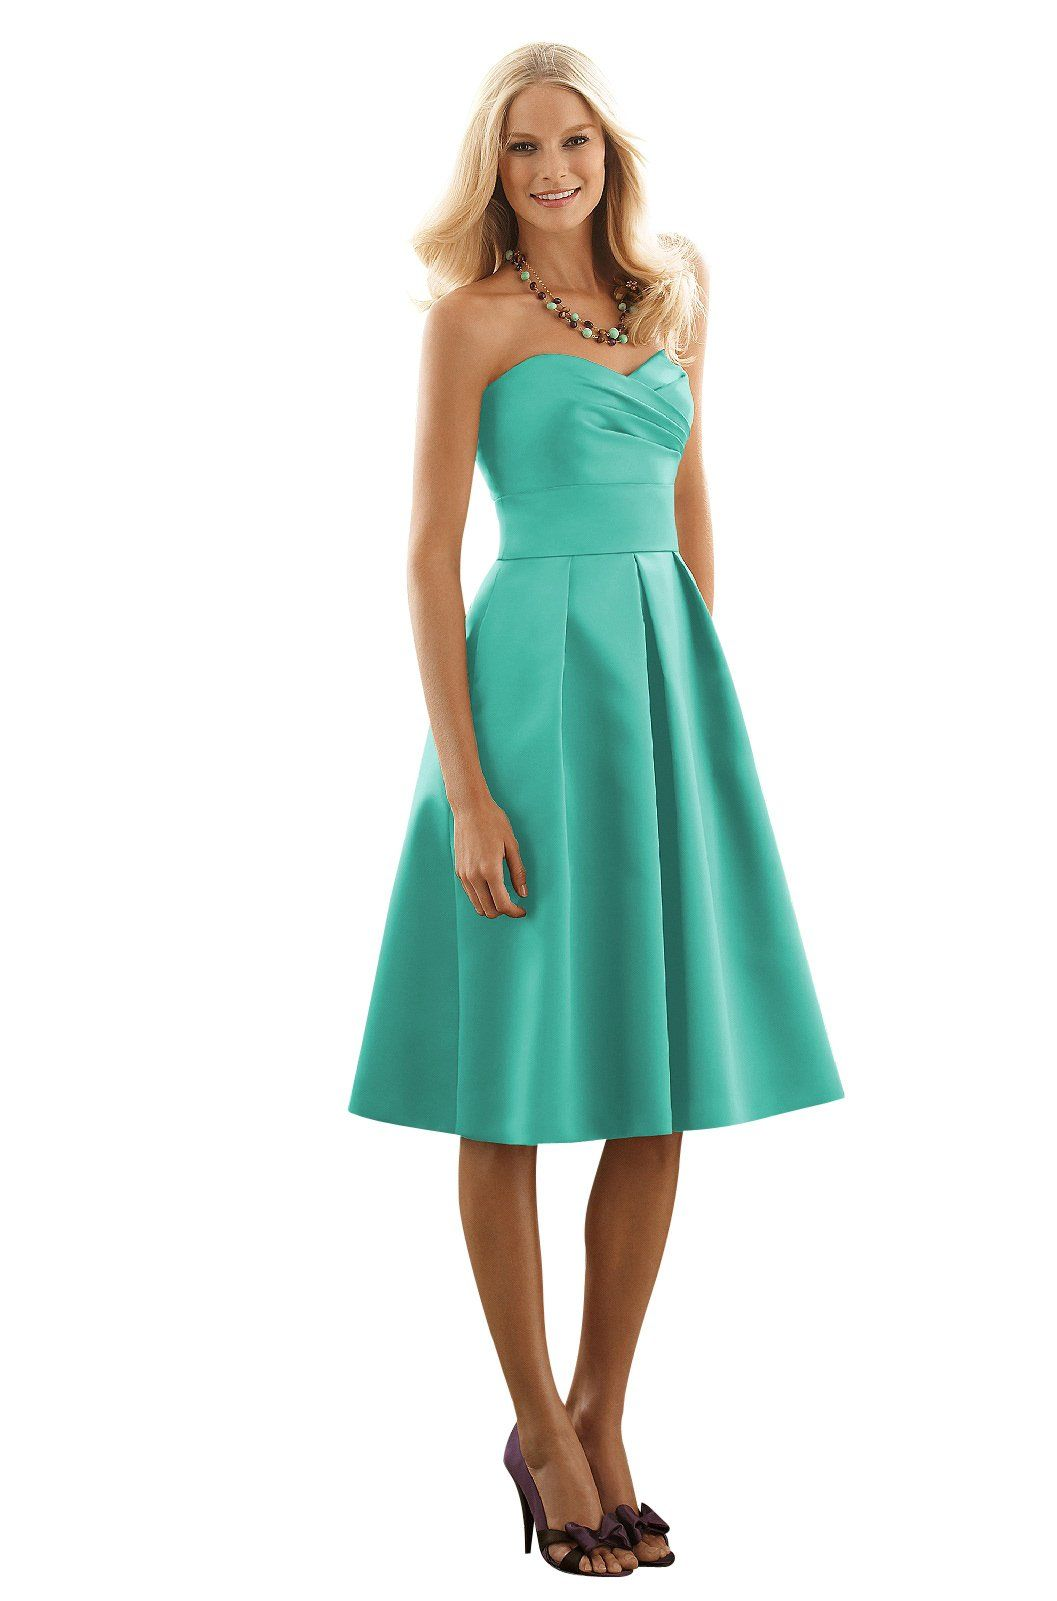 Jill & Kristin Pantone turquoise After Six 6553 Bridesmaid Dress ...